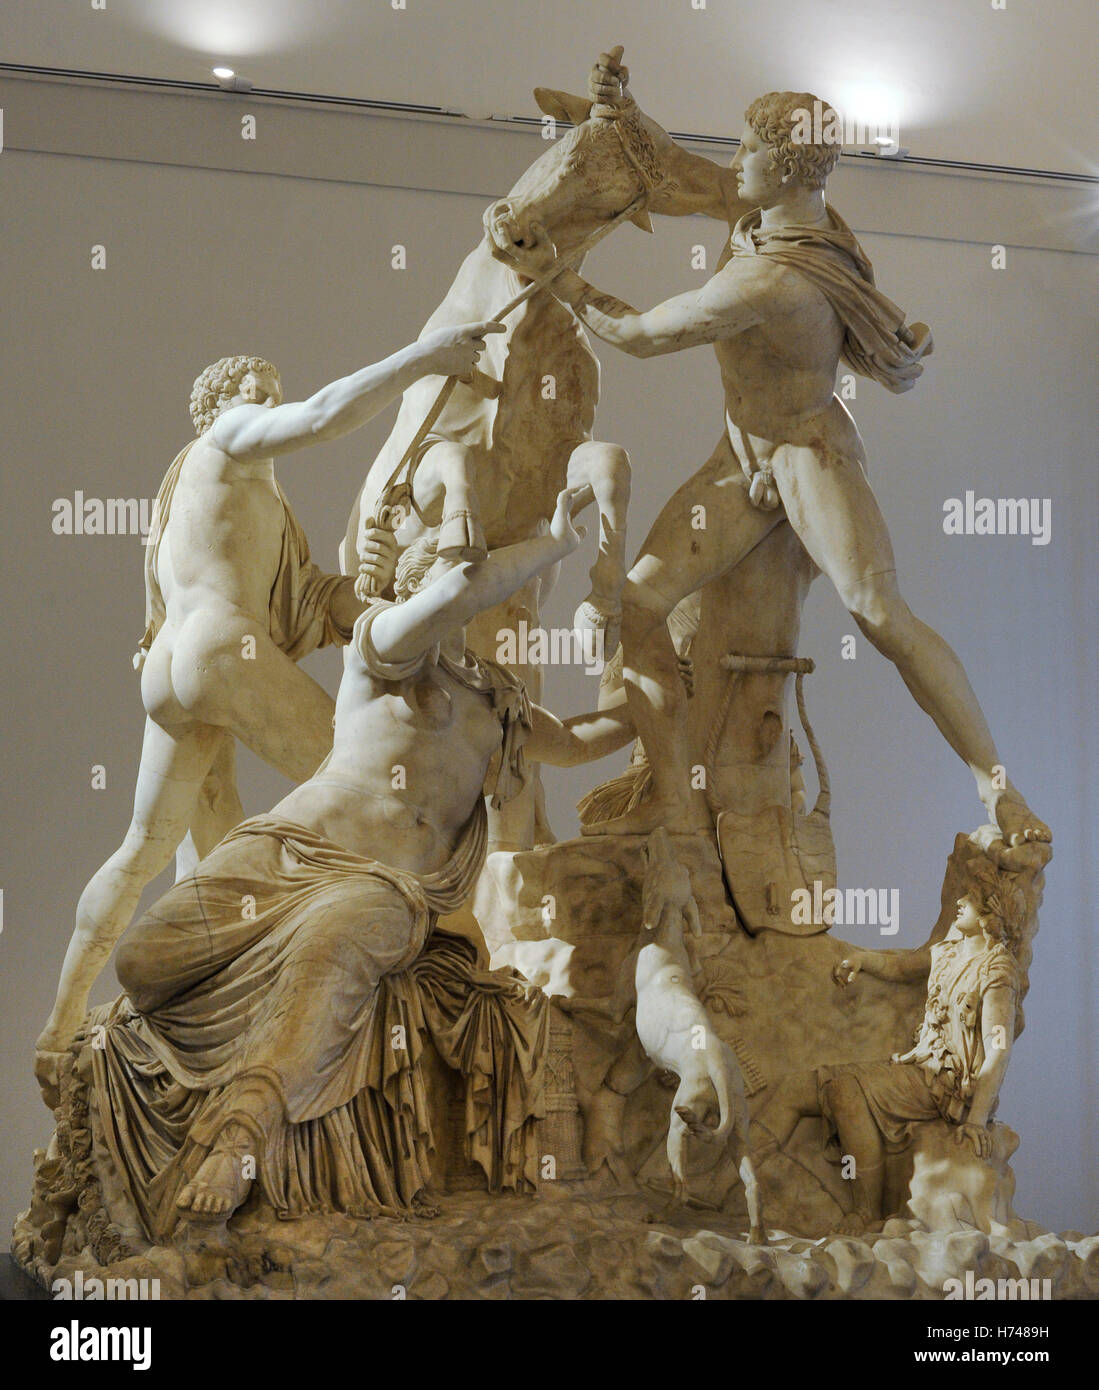 The Farnese Bull. Roman copy (3rd century AD) of a Hellenistic sculpture. Myth of Dirce. She was tied to a wild - Stock Image